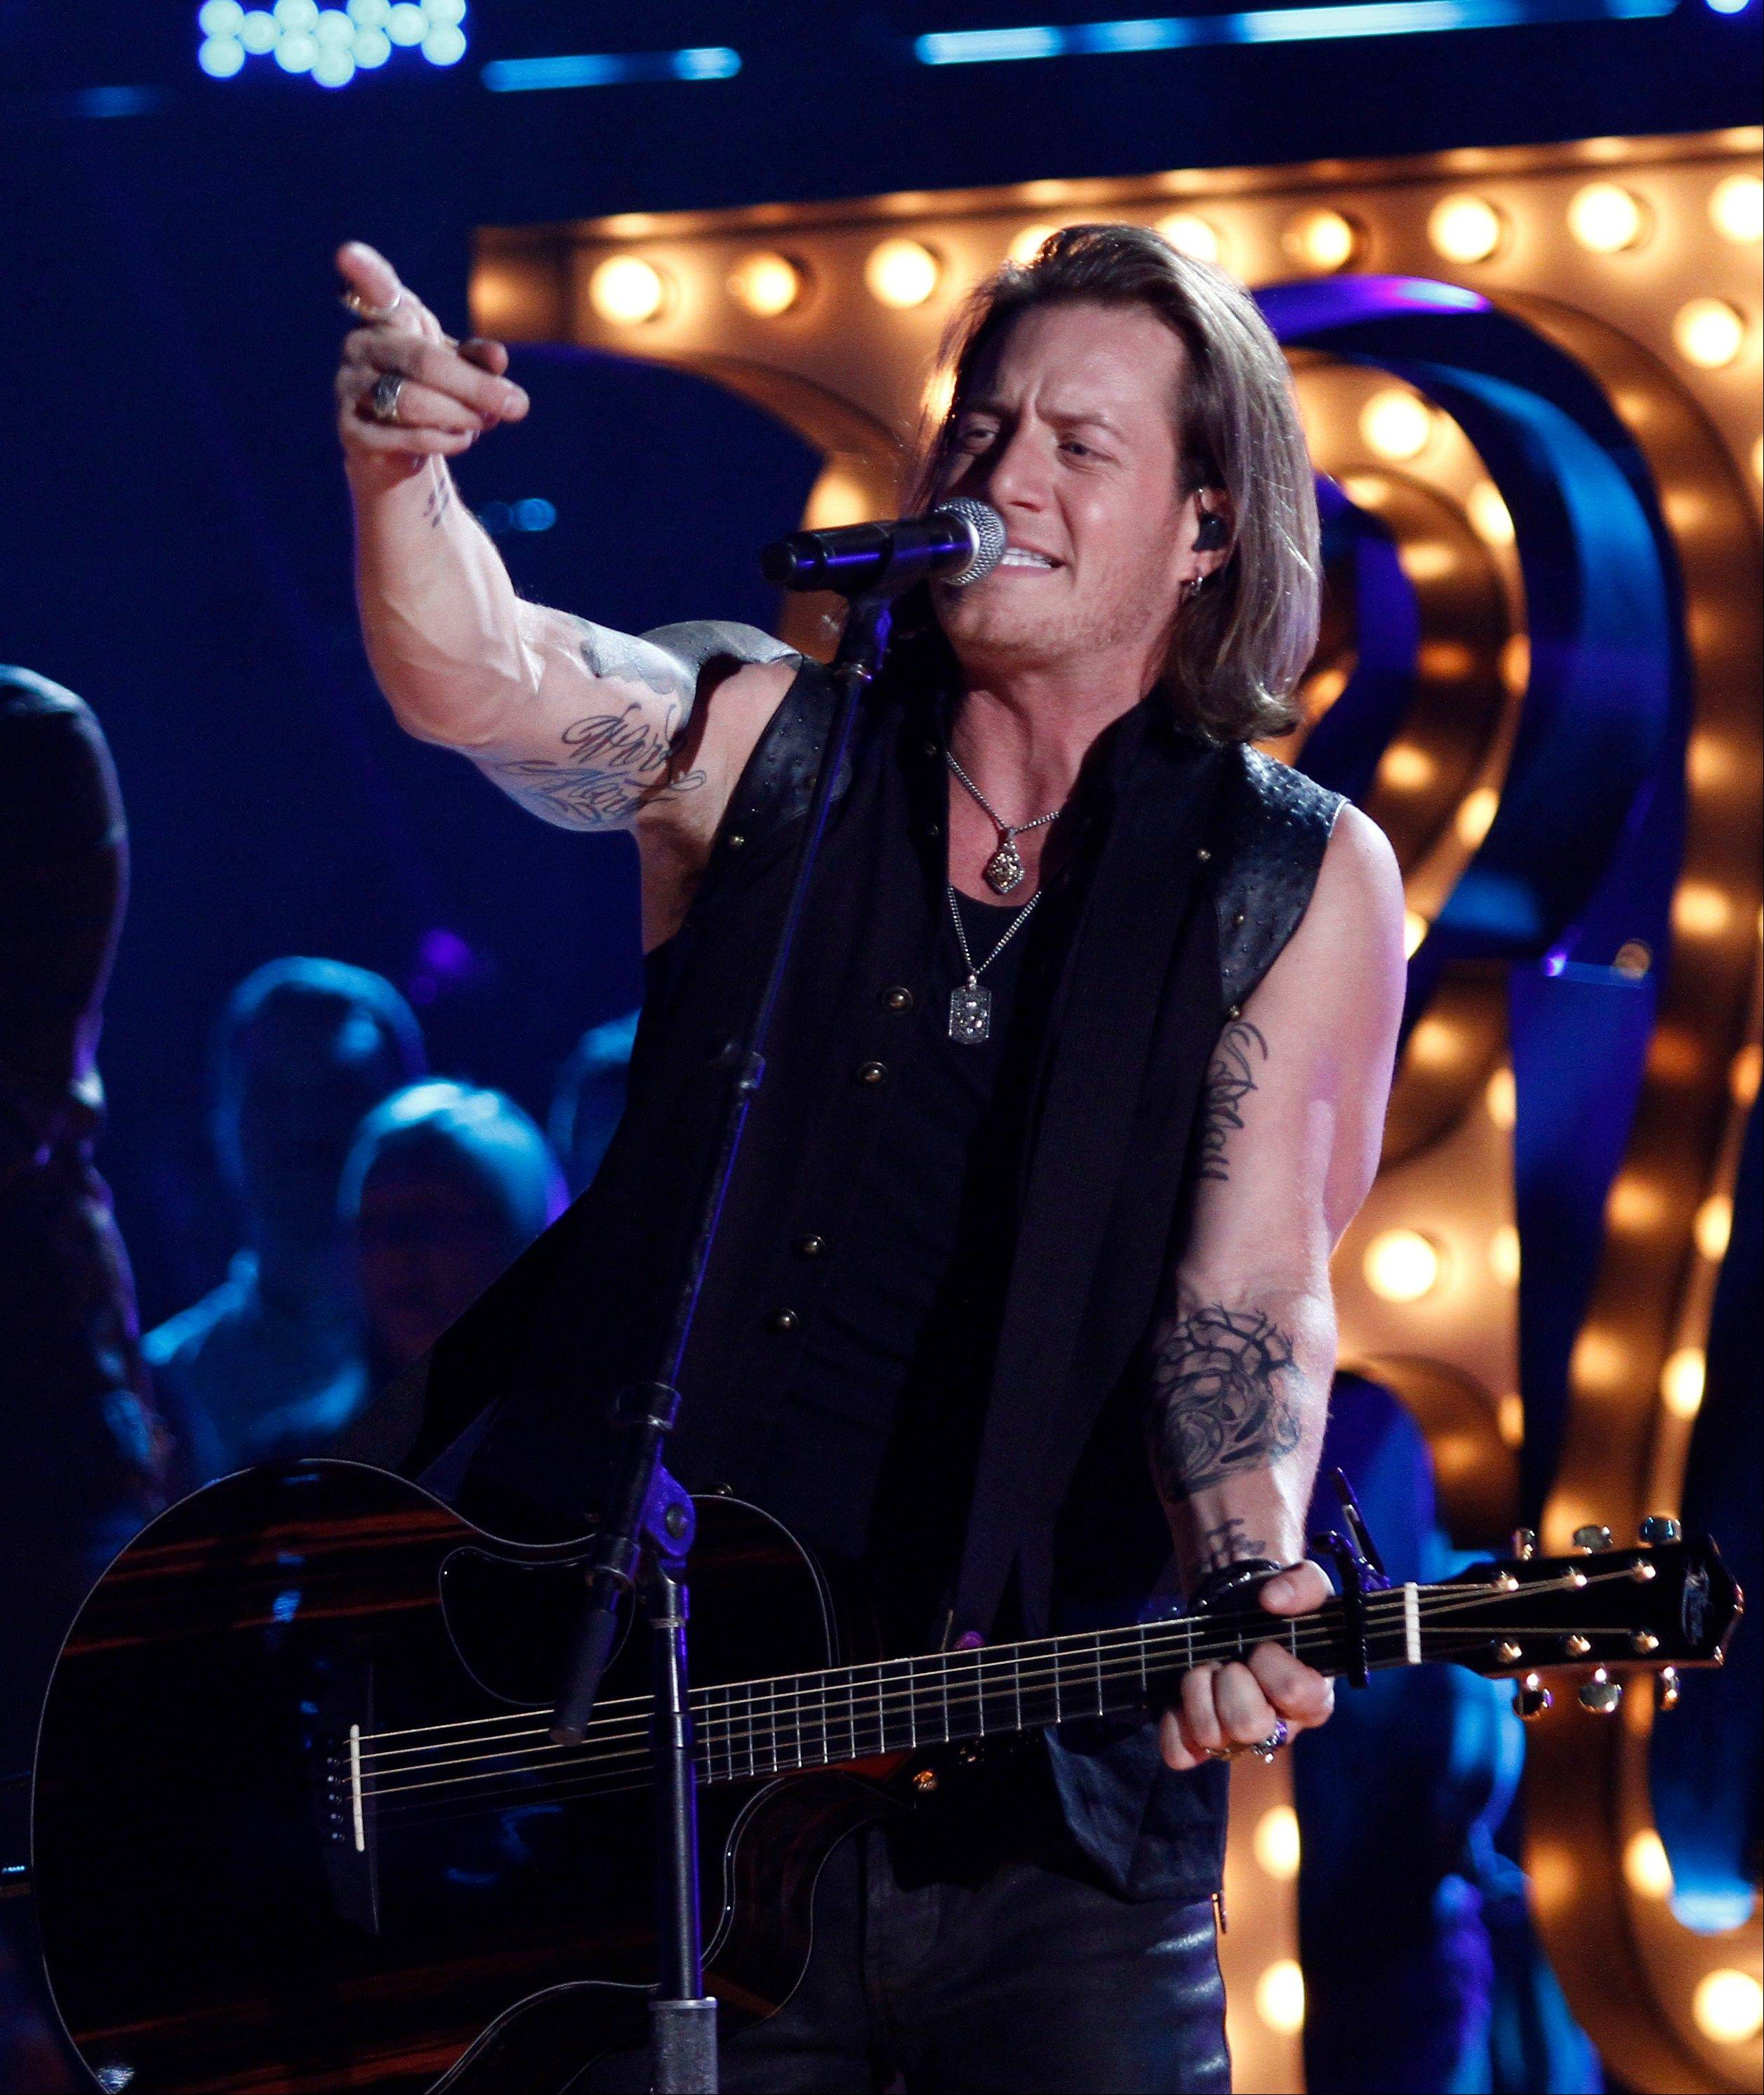 Florida Georgia Line's Tyler Hubbard performs